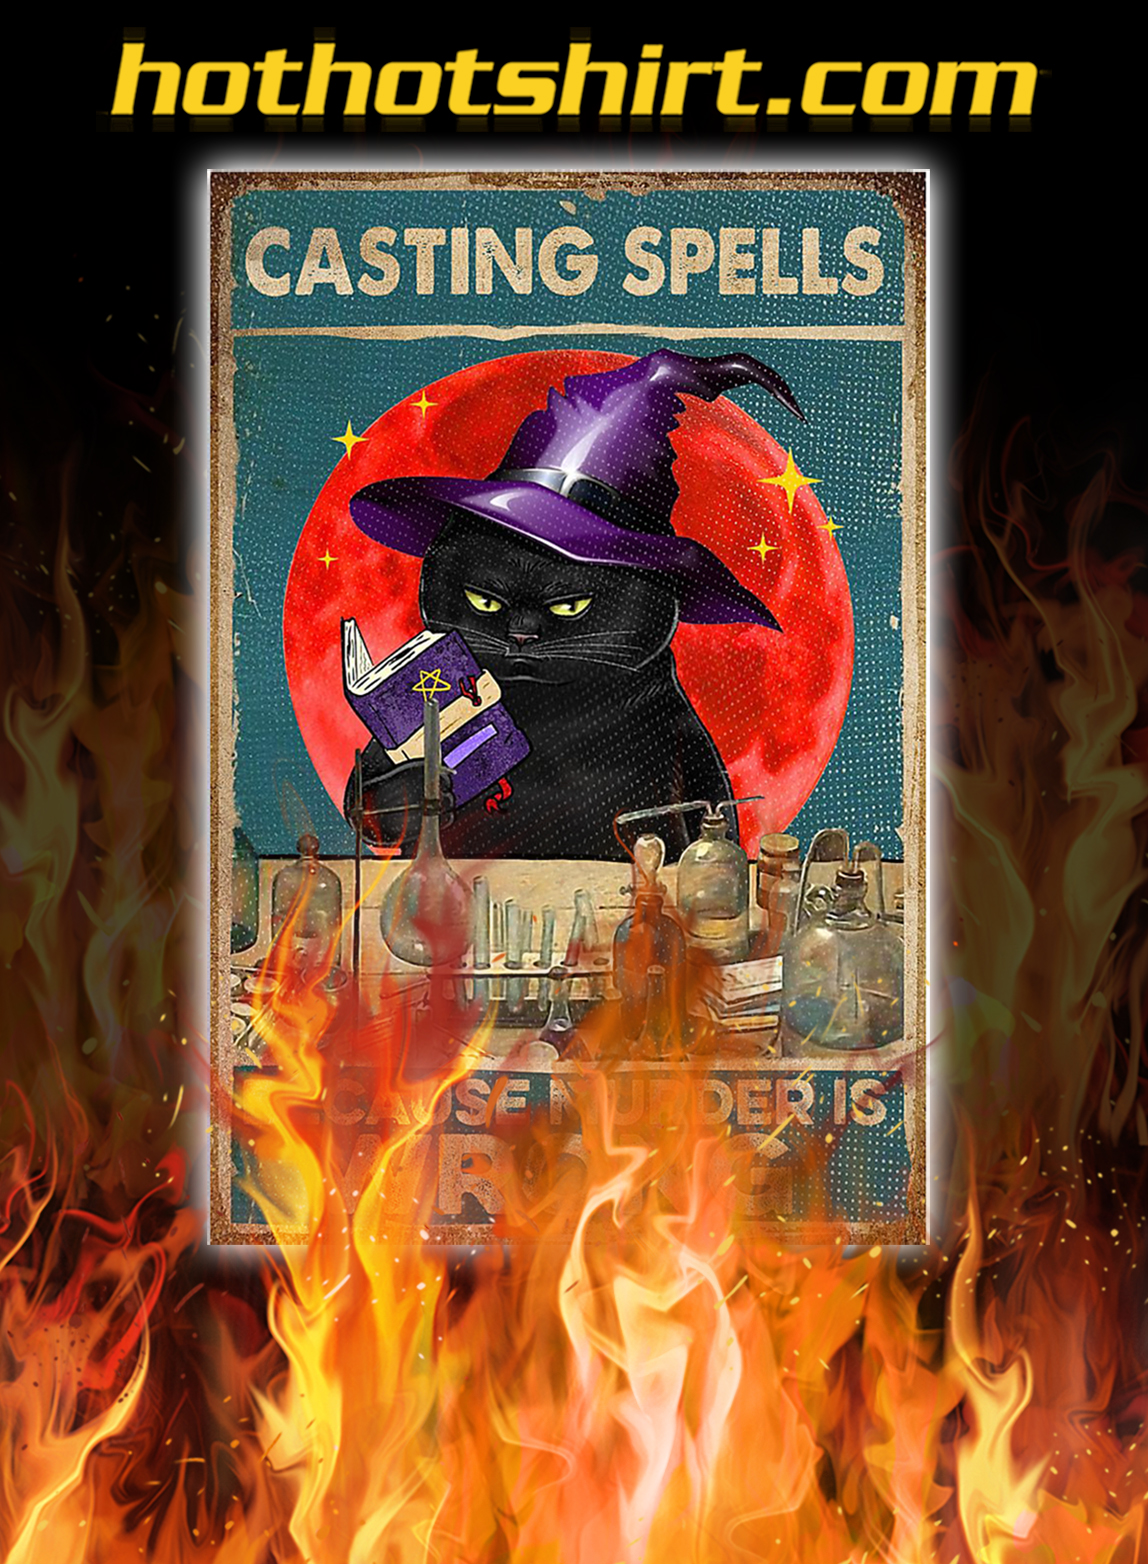 Witch cat casting spells because murder is wrong poster - A2